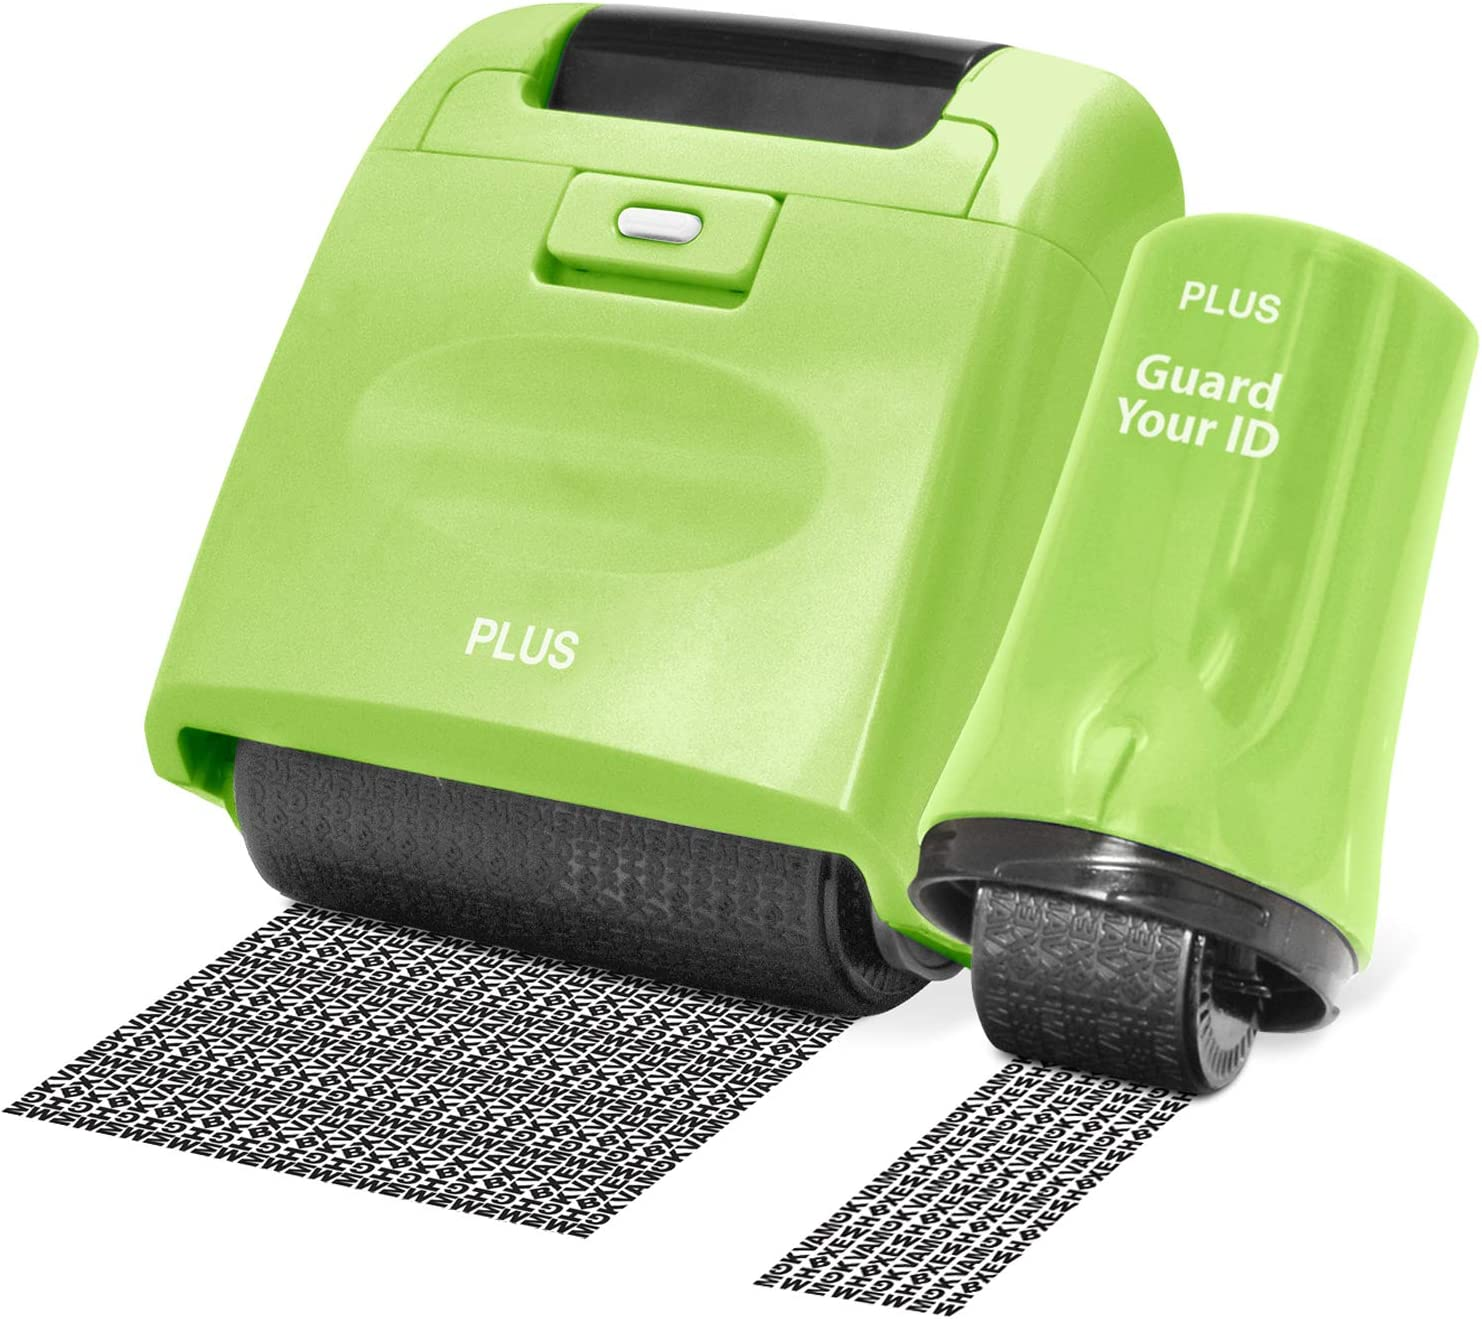 Roller Stamp Data Security Protection Theft Prevention ID Identity Rolling Guard